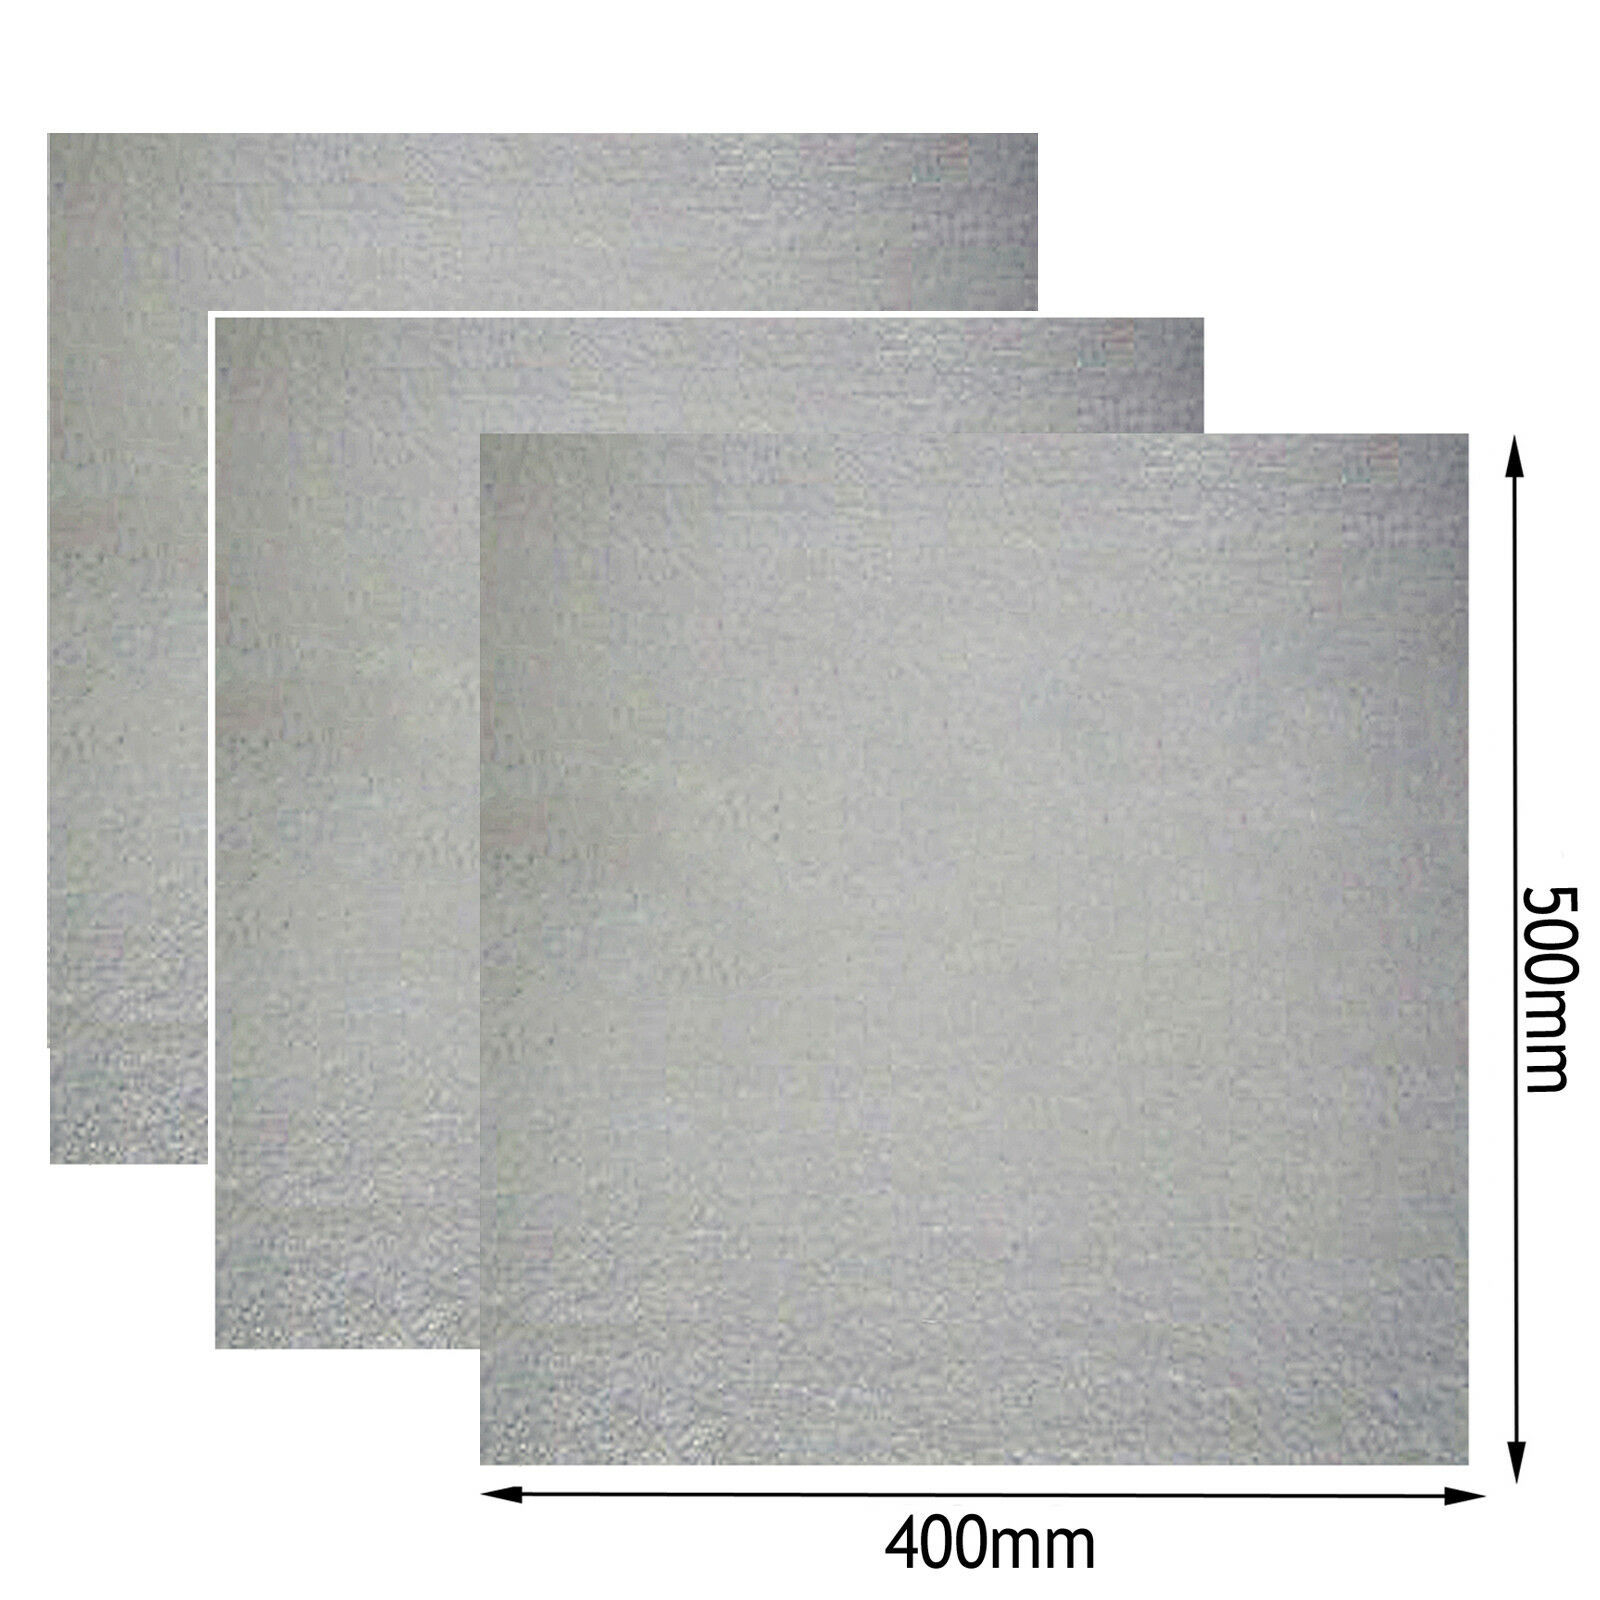 Universal Wave Guide Roof Liner Cover for TRICITY BENDIX Microwave 400x500mm x 3